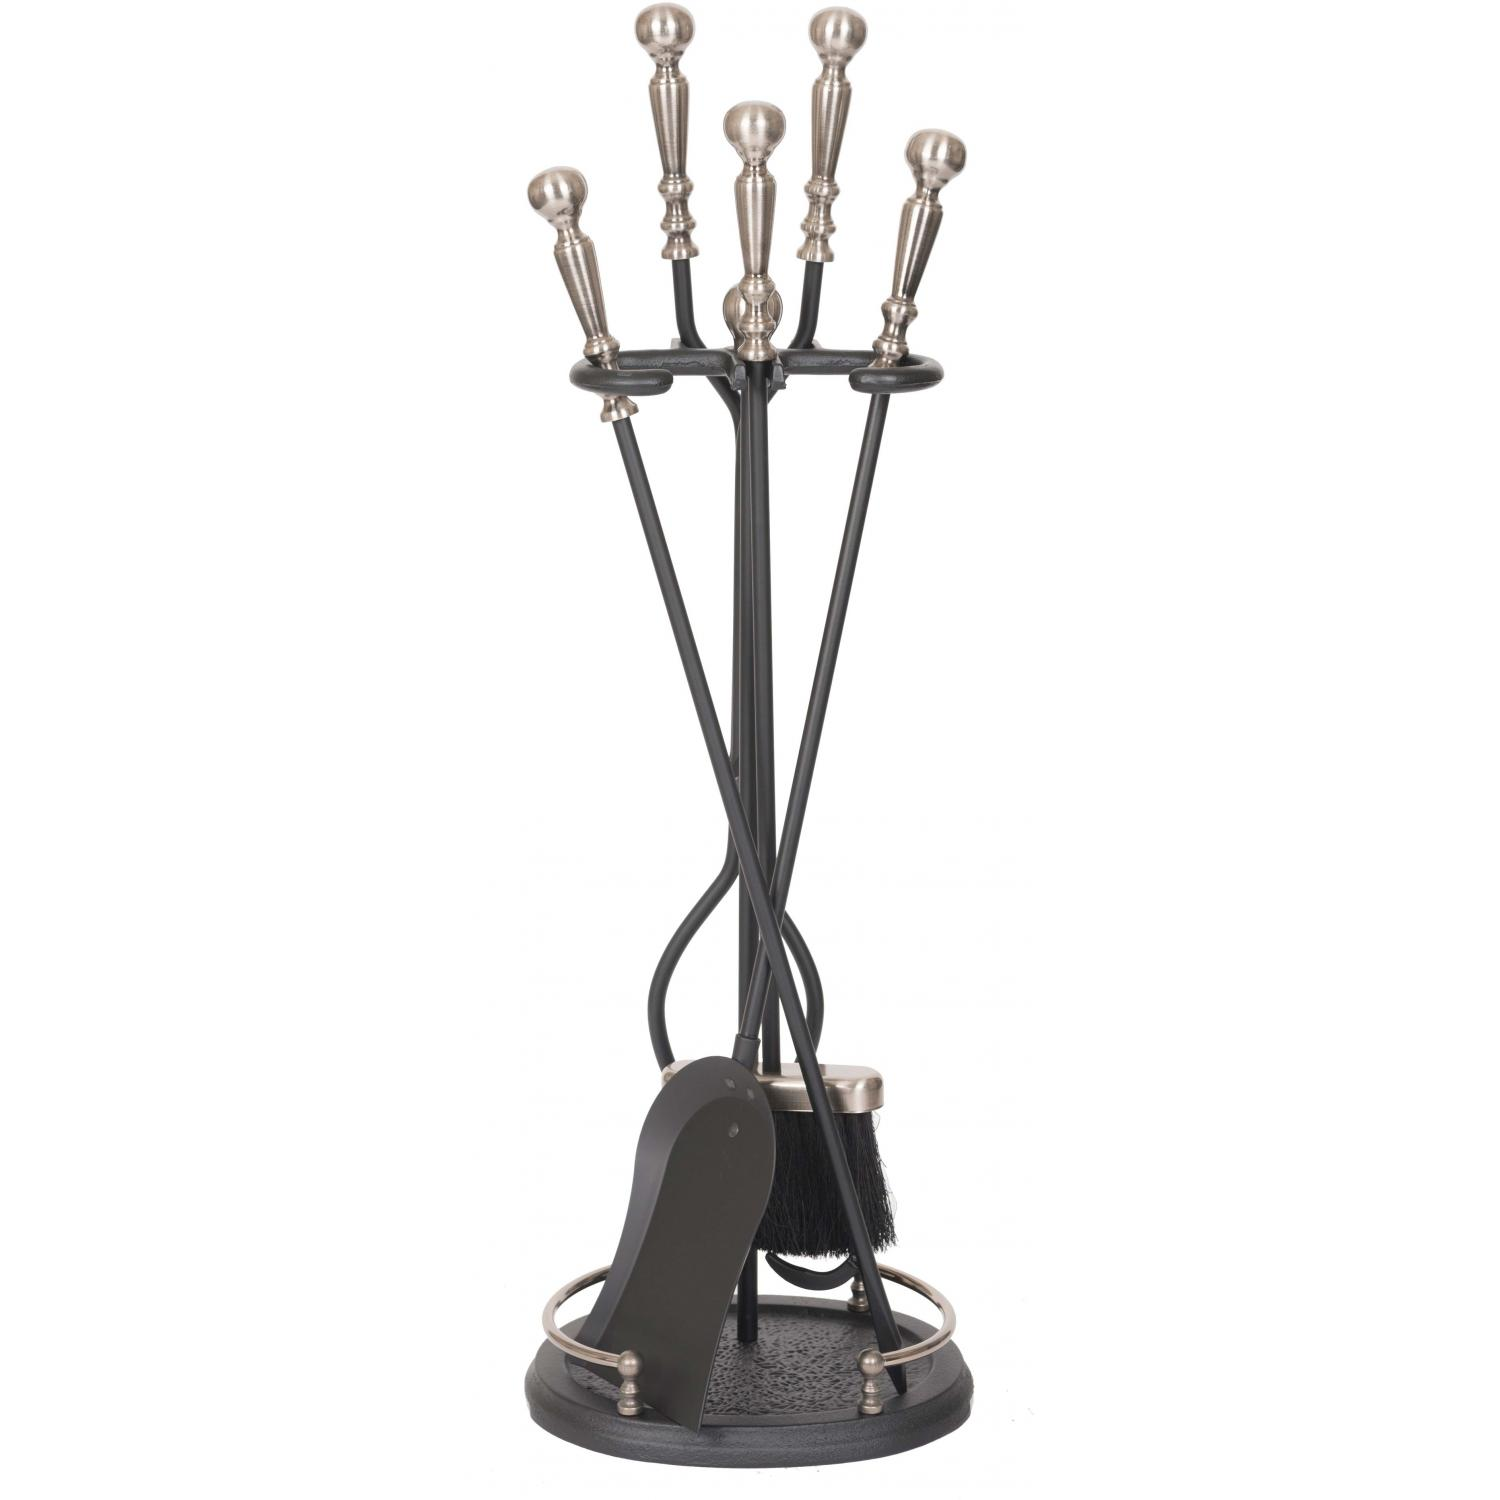 Picture of Alpine Flame 5-Piece Pewter/Black Fireplace Tool Set